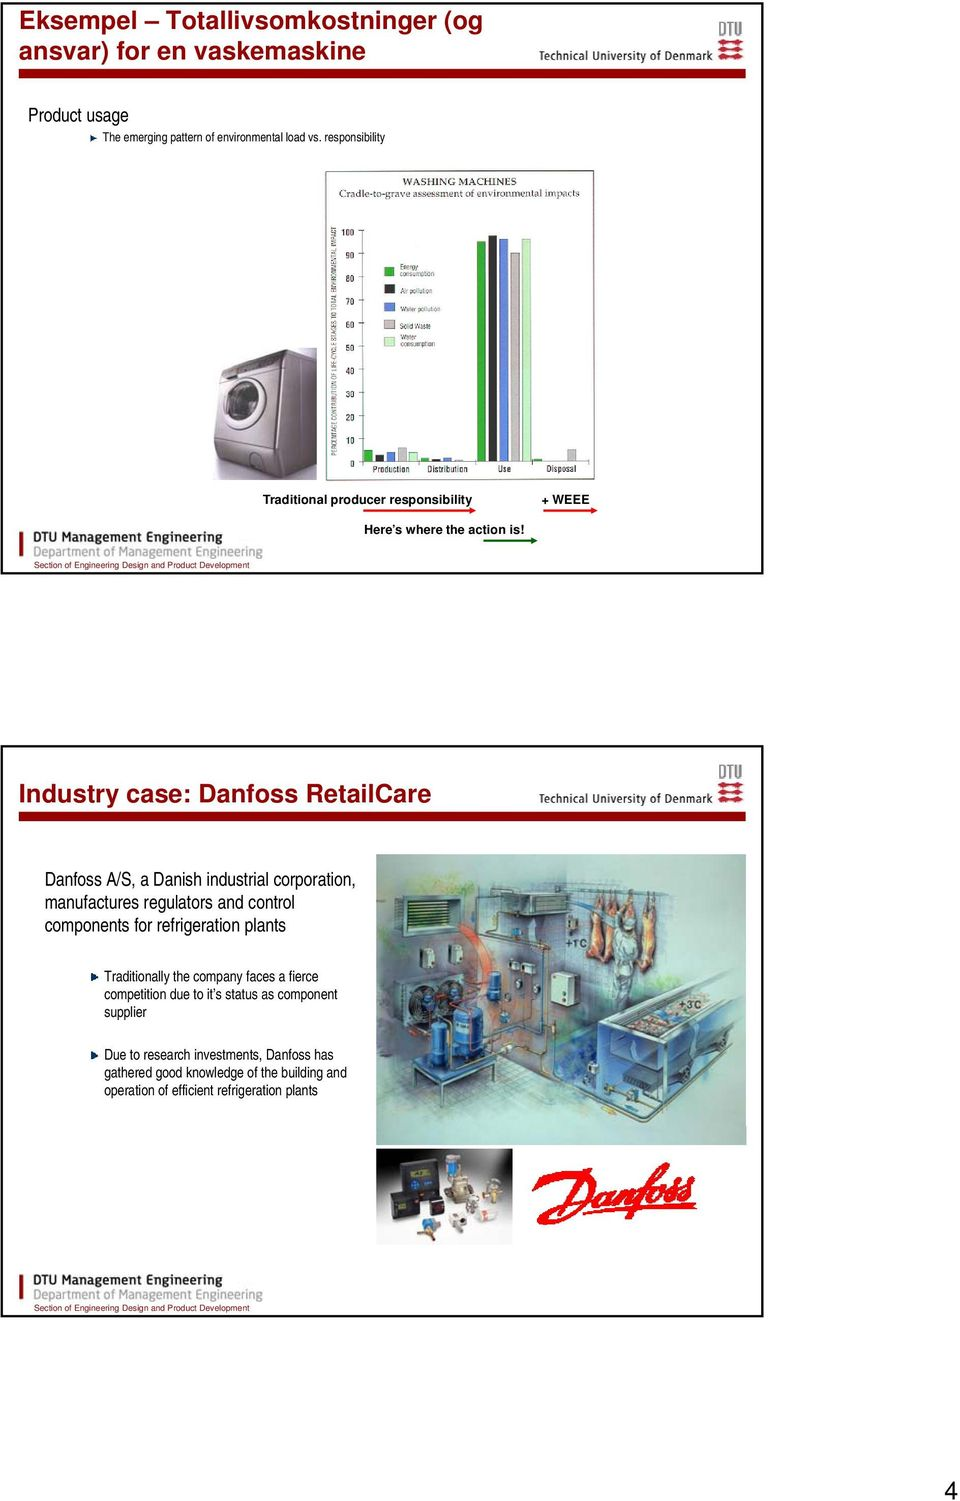 Industry case: Danfoss RetailCare Danfoss A/S, a Danish industrial corporation, manufactures regulators and control components for refrigeration